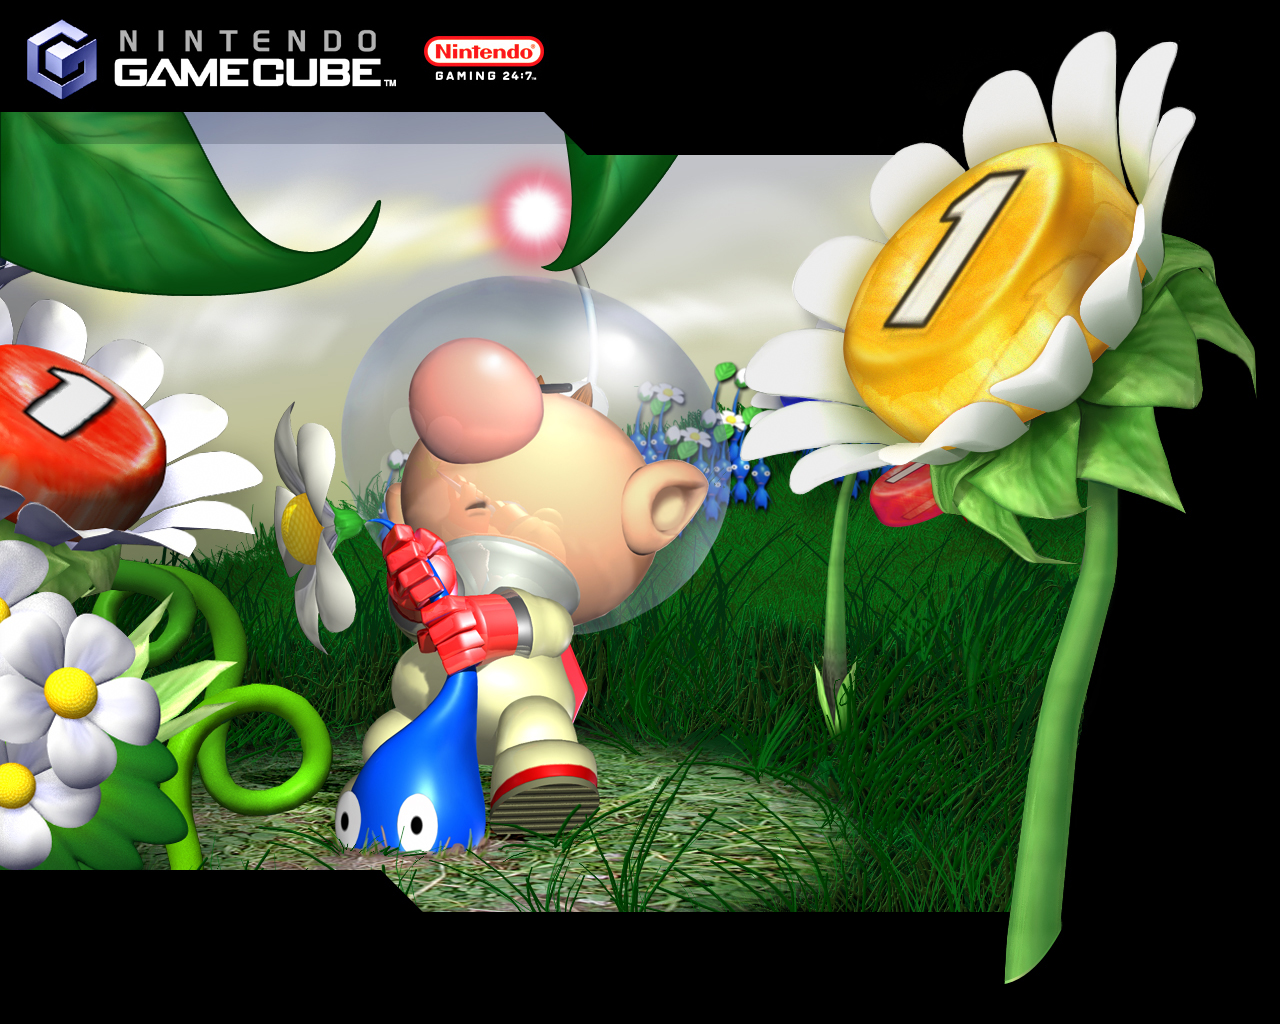 Pikmin Gamecube Wallpaper